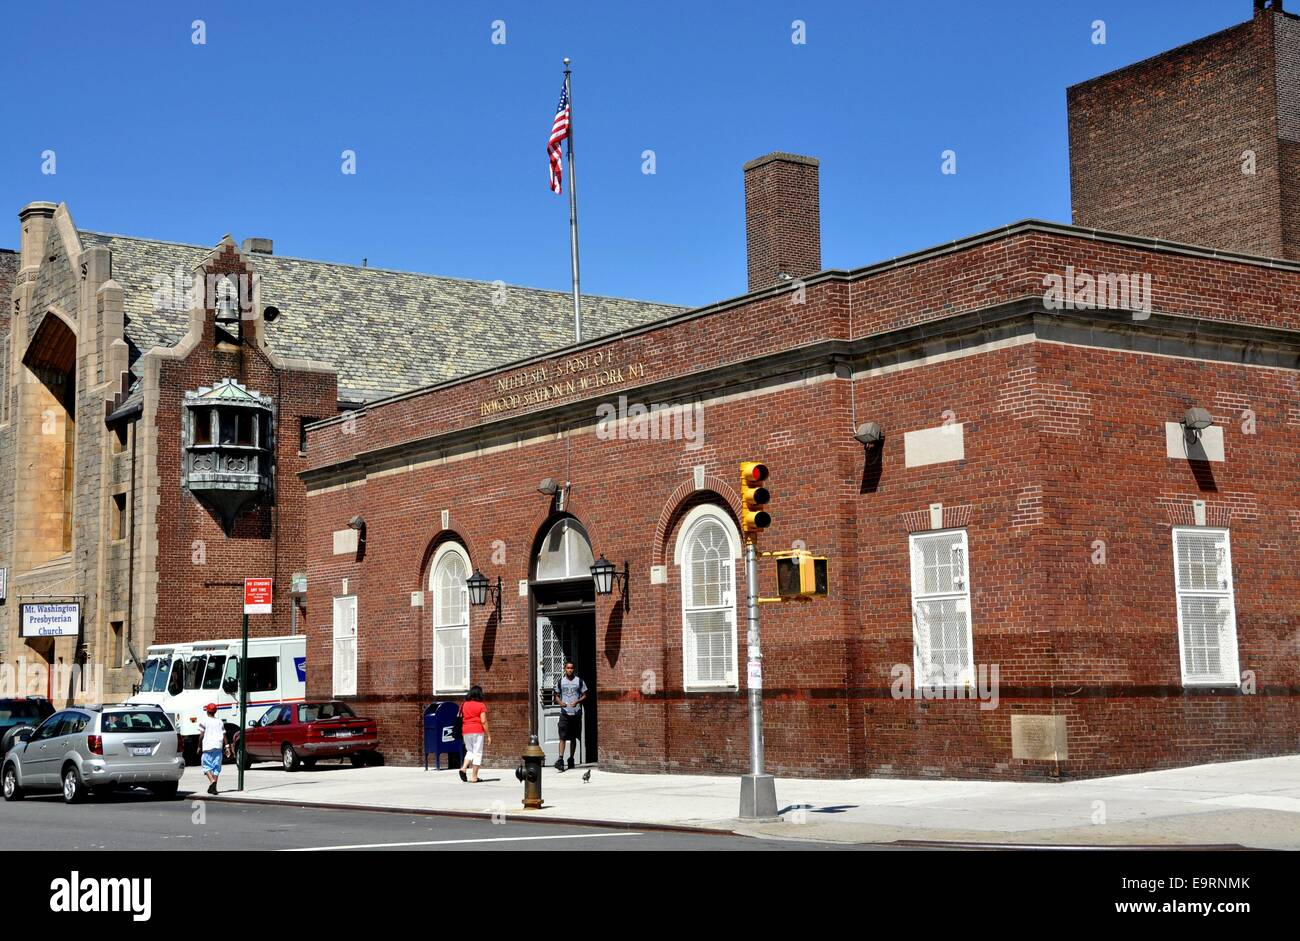 Postal Service Building High Resolution Stock Photography And Images Alamy